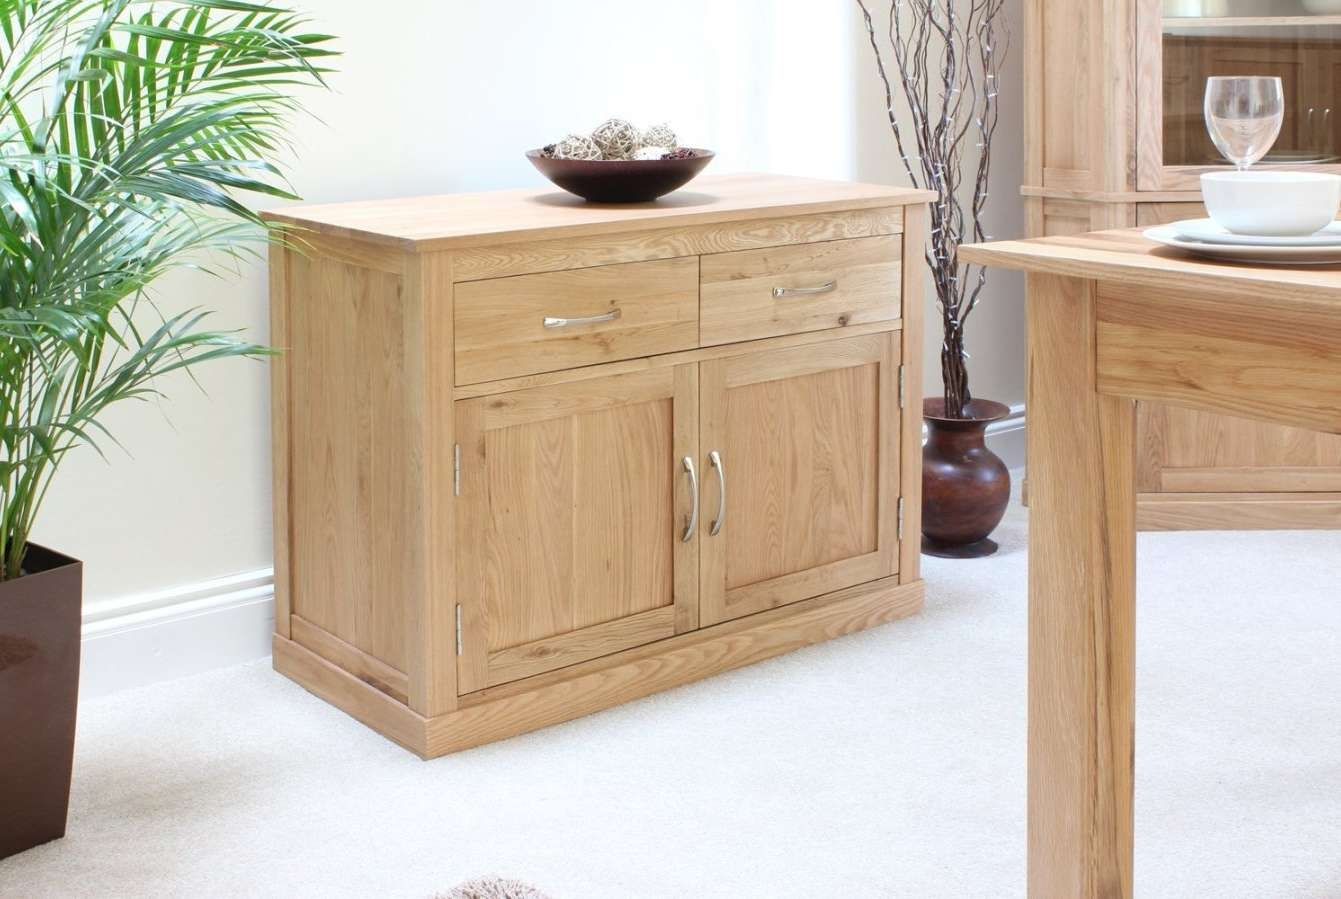 Sideboard : Wooden Sideboards Illustrious Oak Sideboards Bristol For Wooden Sideboards (View 11 of 20)